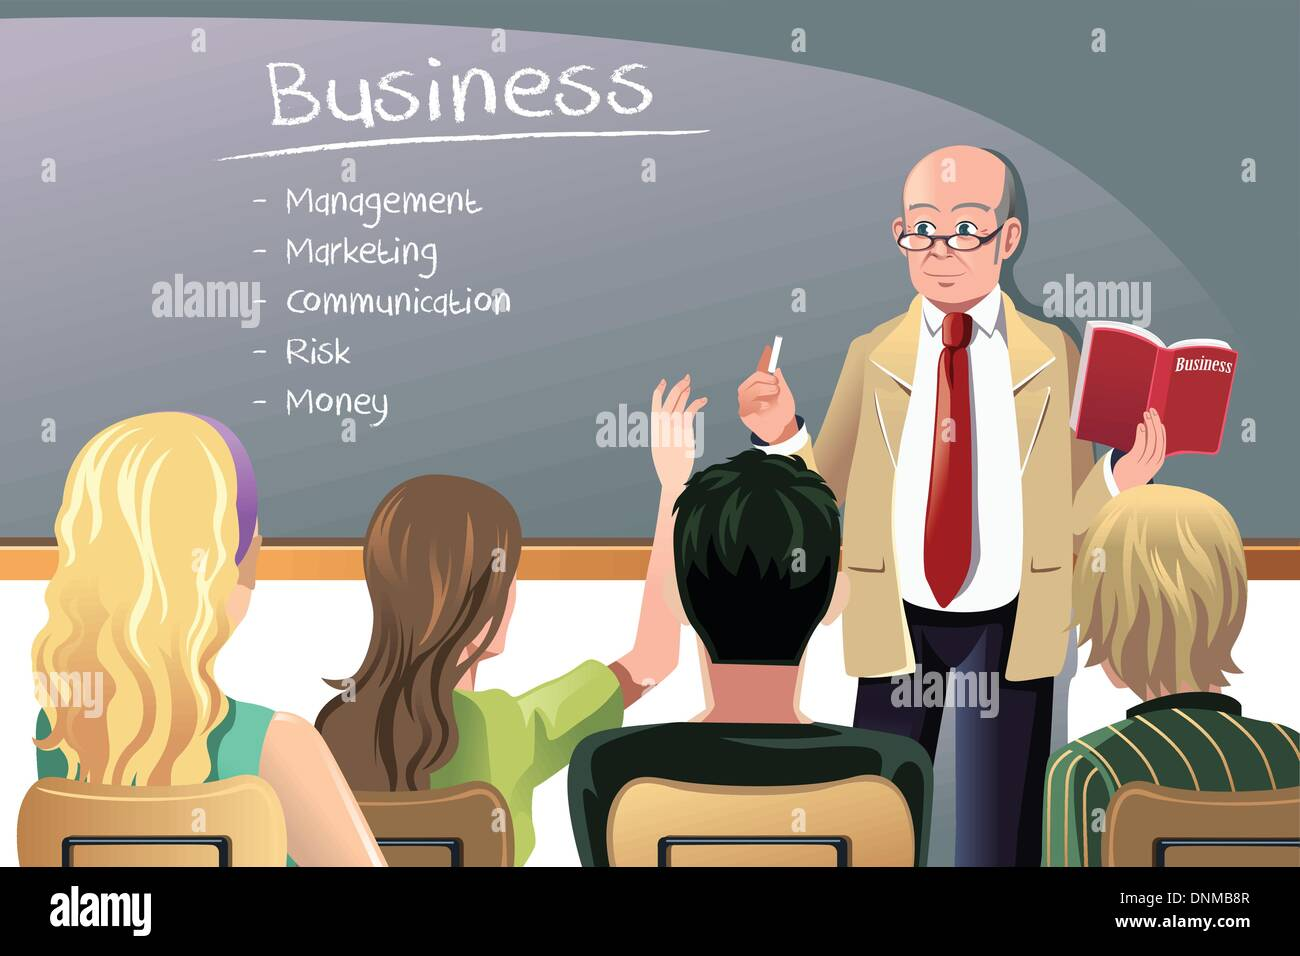 A vector illustration of a business class teacher or